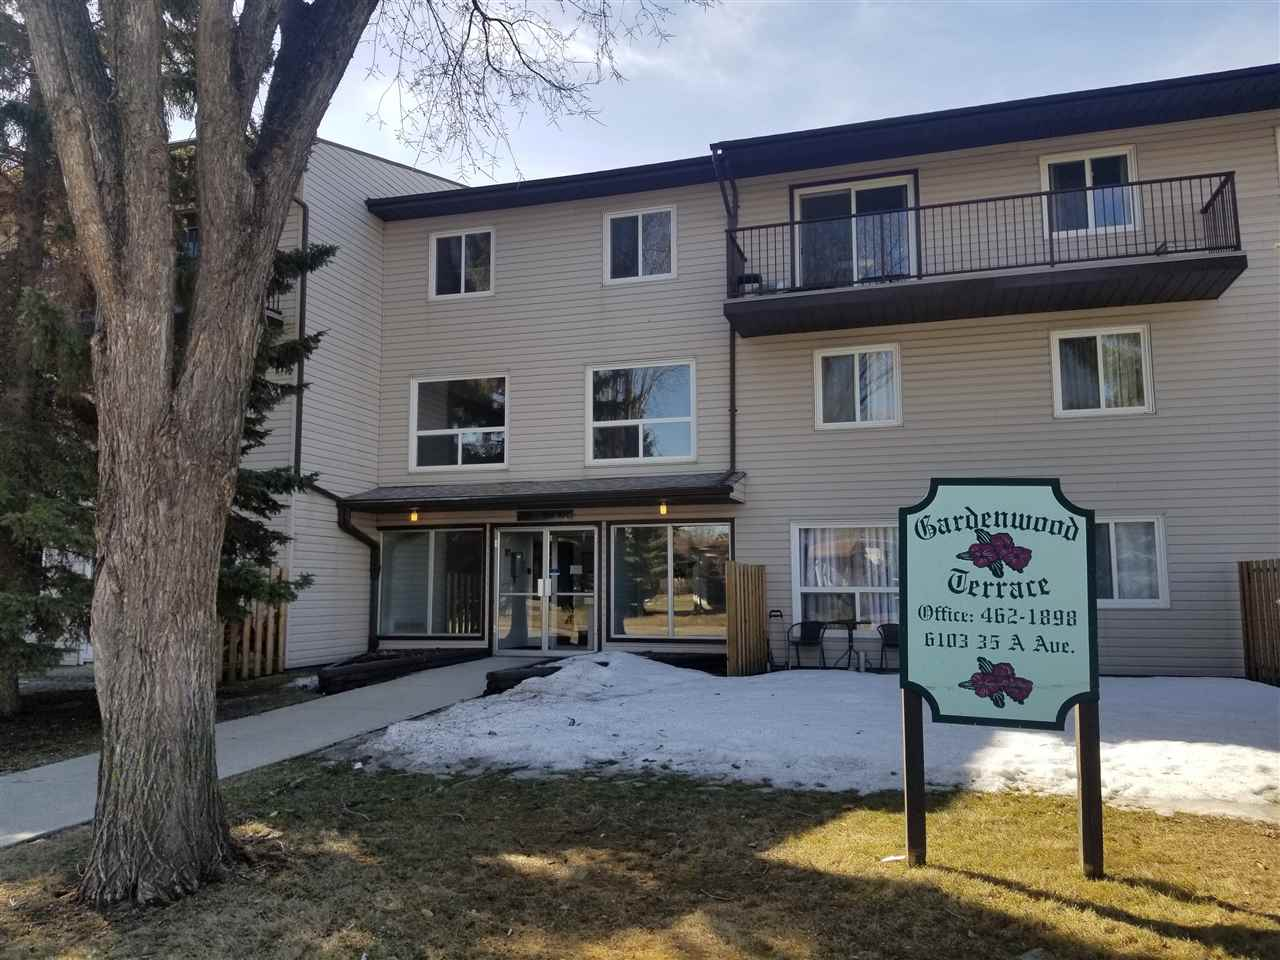 Excellent property for a first time home buyer!!! Great value for this 2 storey, 2 bedroom apartment style condo with 955 sqft of space. Kitchen and living room are on the main floor while you will find 2 large bedrooms and a big walking in storage room on the second floor. Separate entrance to the unit from the patio area. The condo is located in a mature and quiet area with easy access to schools, stores, and public transit.